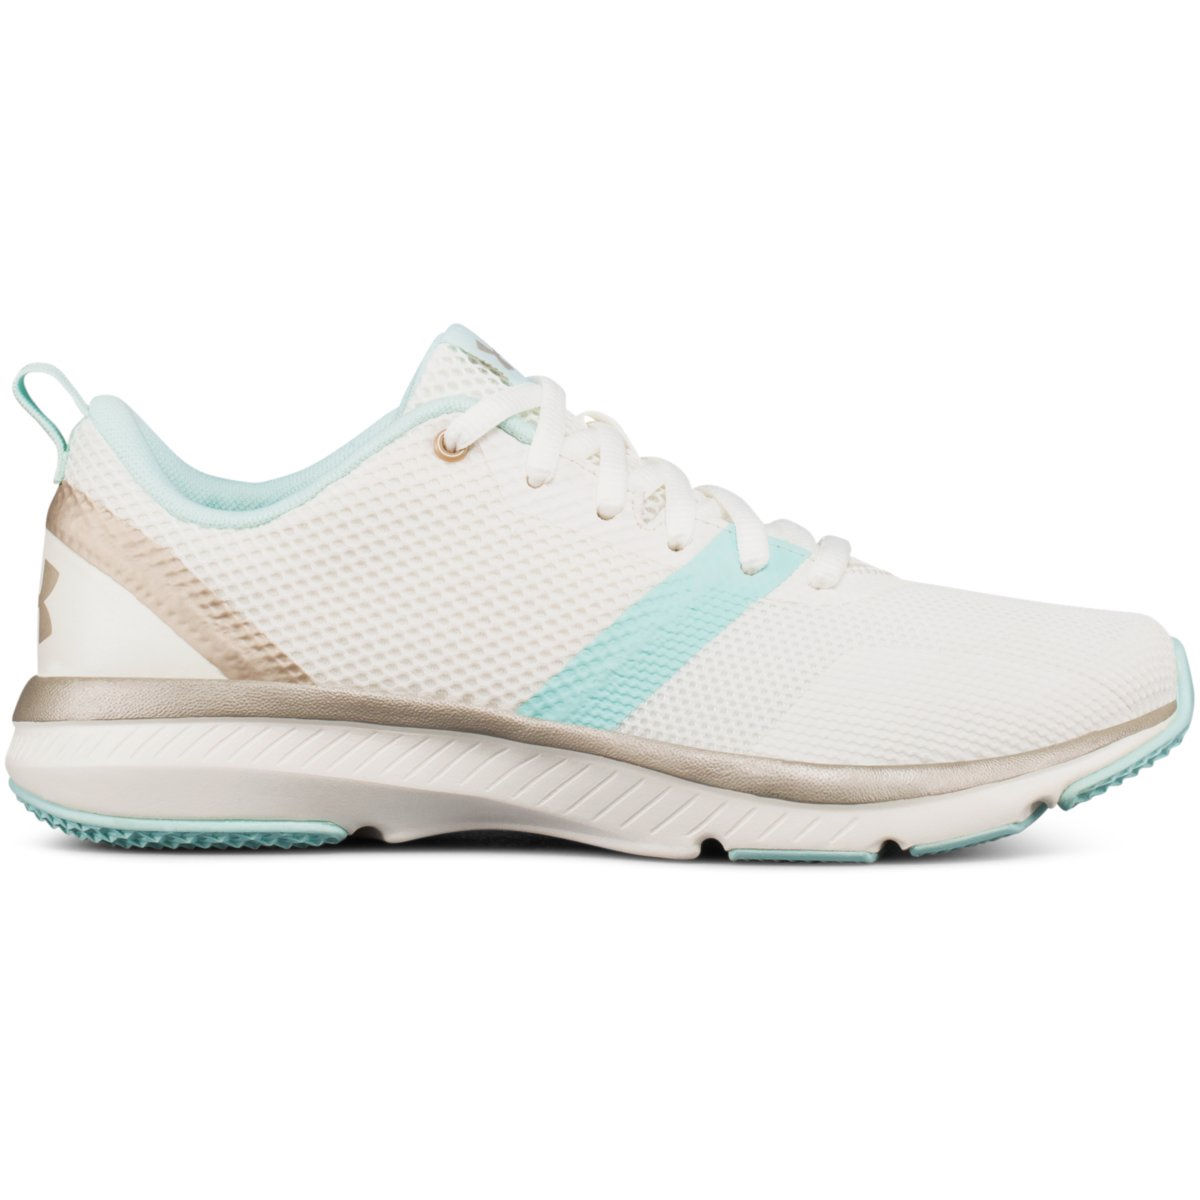 Chaussures Femme Under Armour Press 2 Training - 5